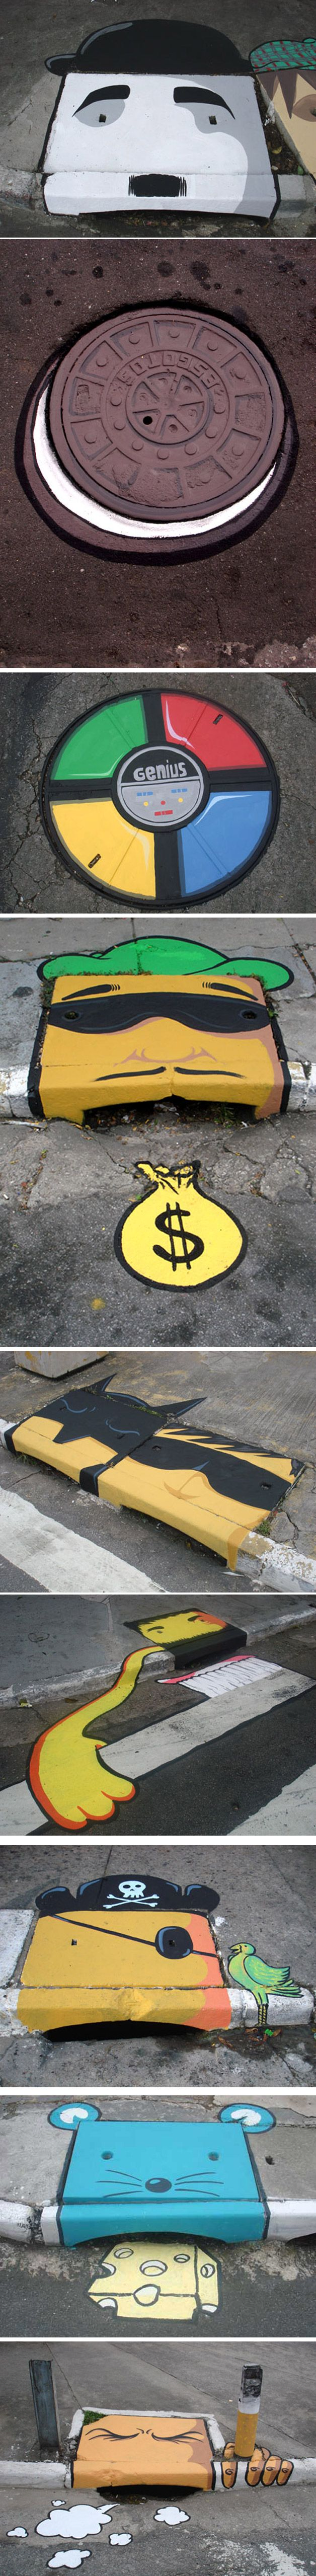 Street art in Street Gutters #1 – Inspirational Post 7 Street Art Graffiti For t… – Anthony Pillos